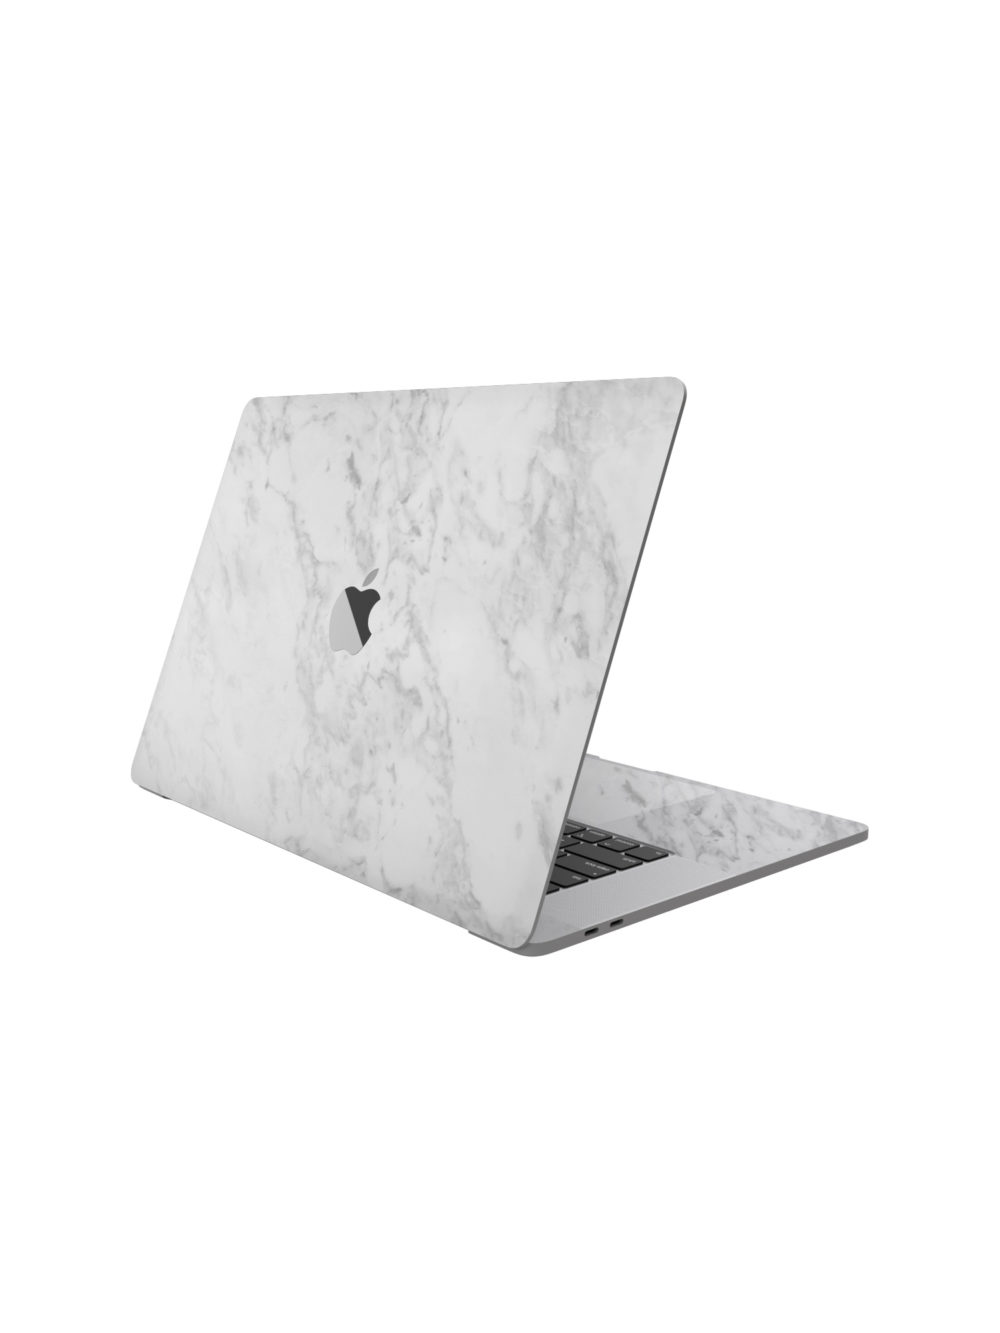 White Marble Skin for Apple Macbook Pro M1 2020